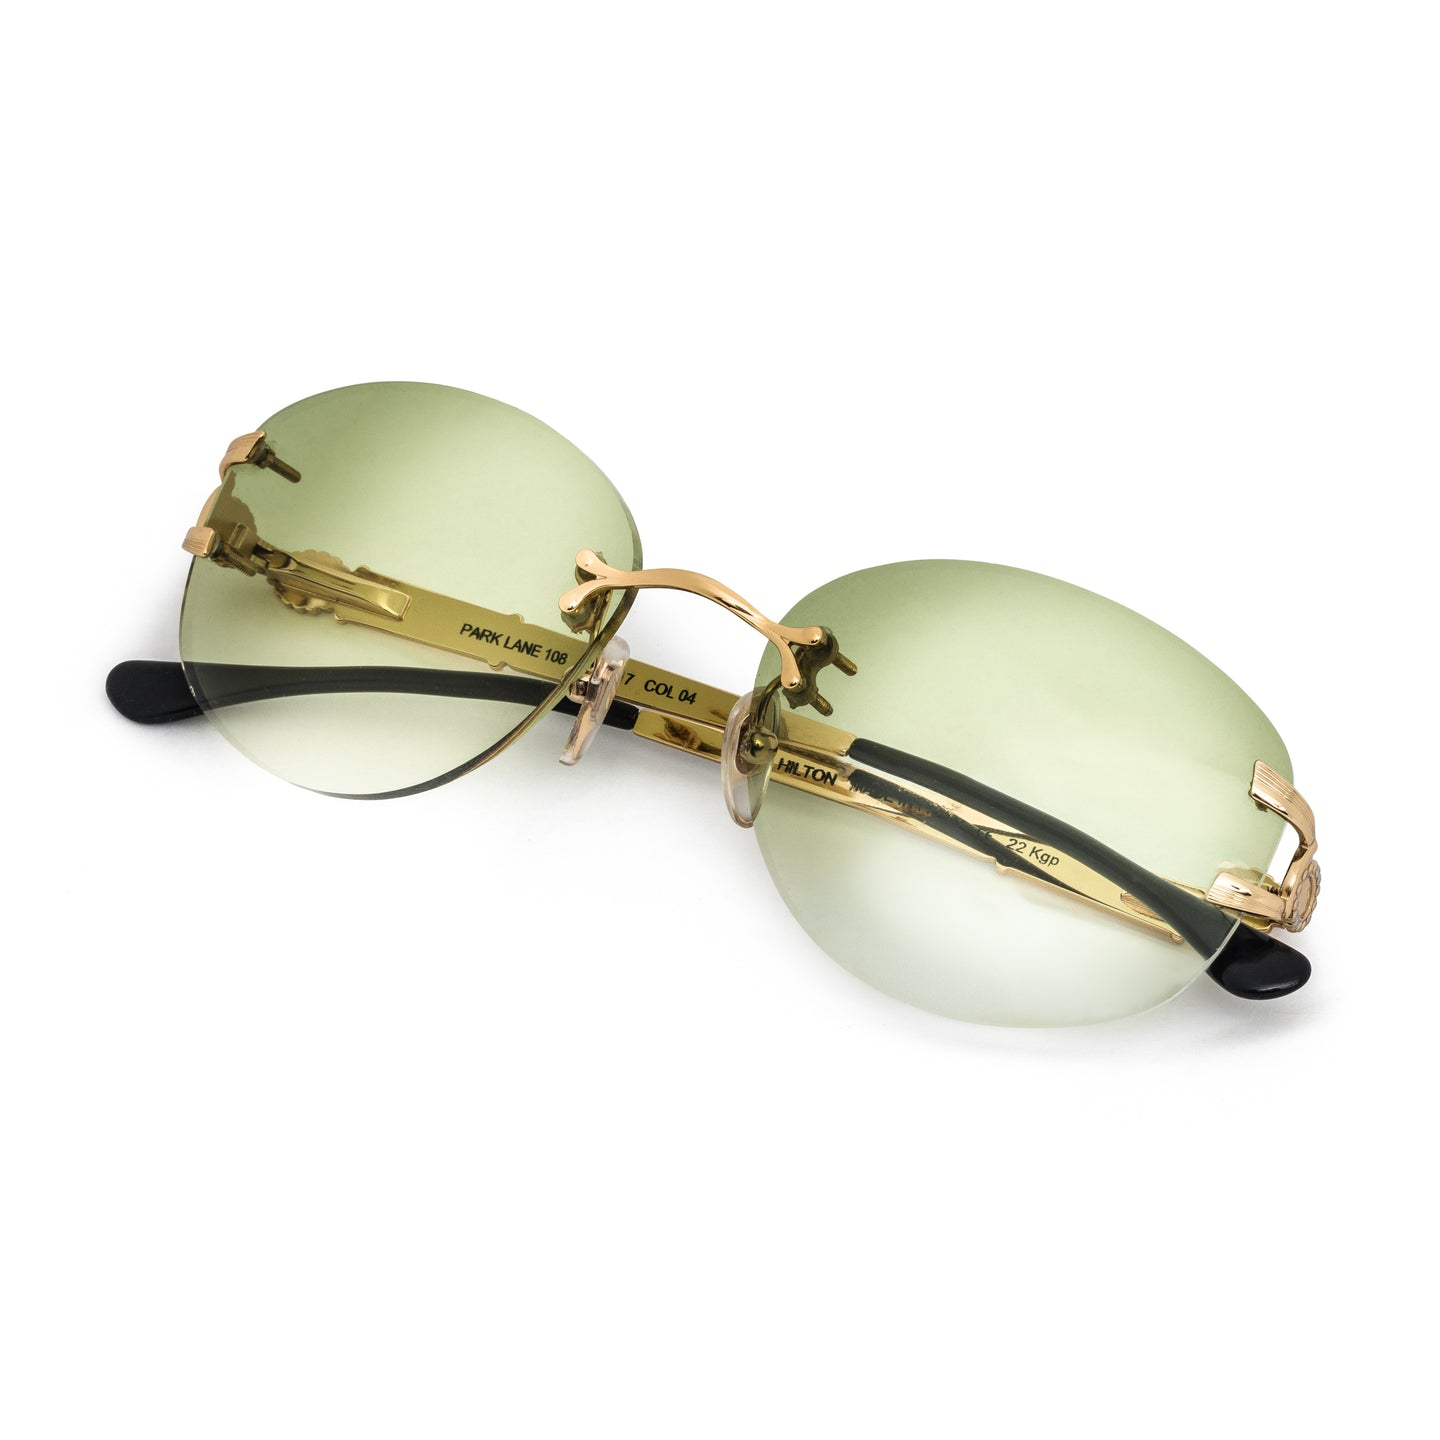 Vintage Hilton Parklane 108 04 (Field Green) Thumbnail, Hilton , glasses frames, eyeglasses online, eyeglass frames, mens glasses, womens glasses, buy glasses online, designer eyeglasses, vintage sunglasses, retro sunglasses, vintage glasses, sunglass, eyeglass, glasses, lens, vintage frames company, vf